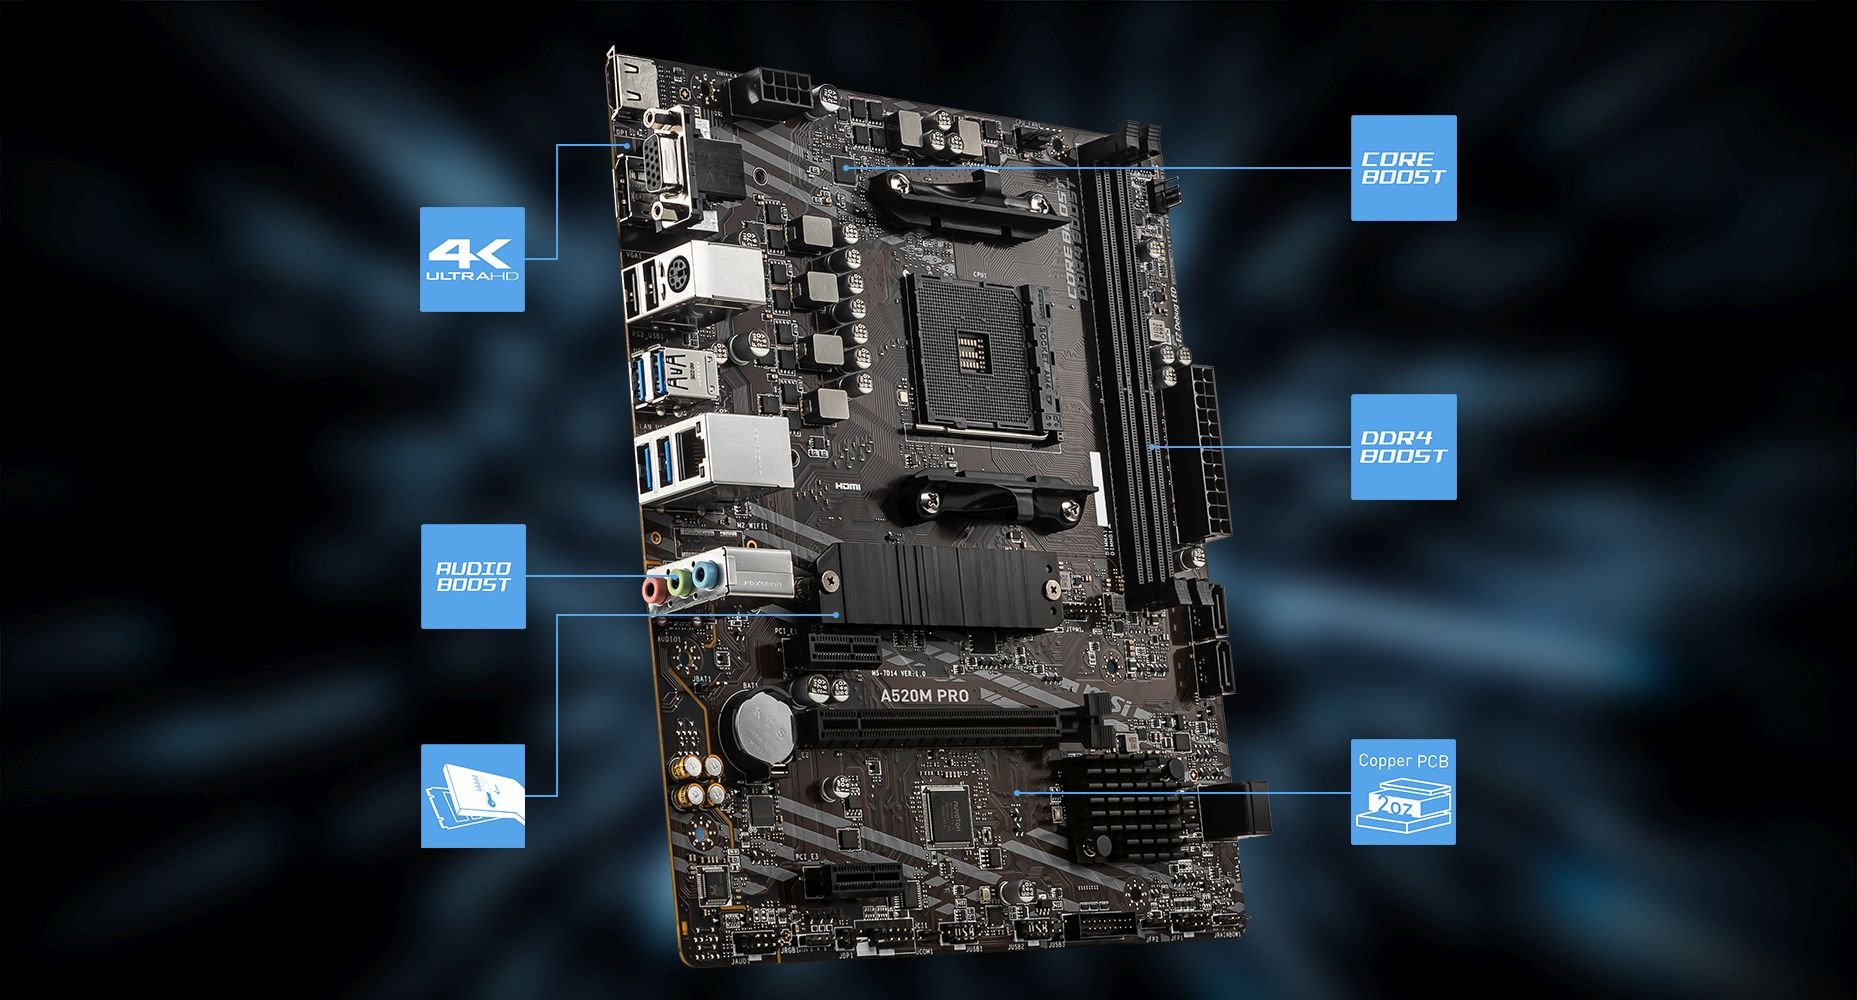 MSI A520M PRO overview